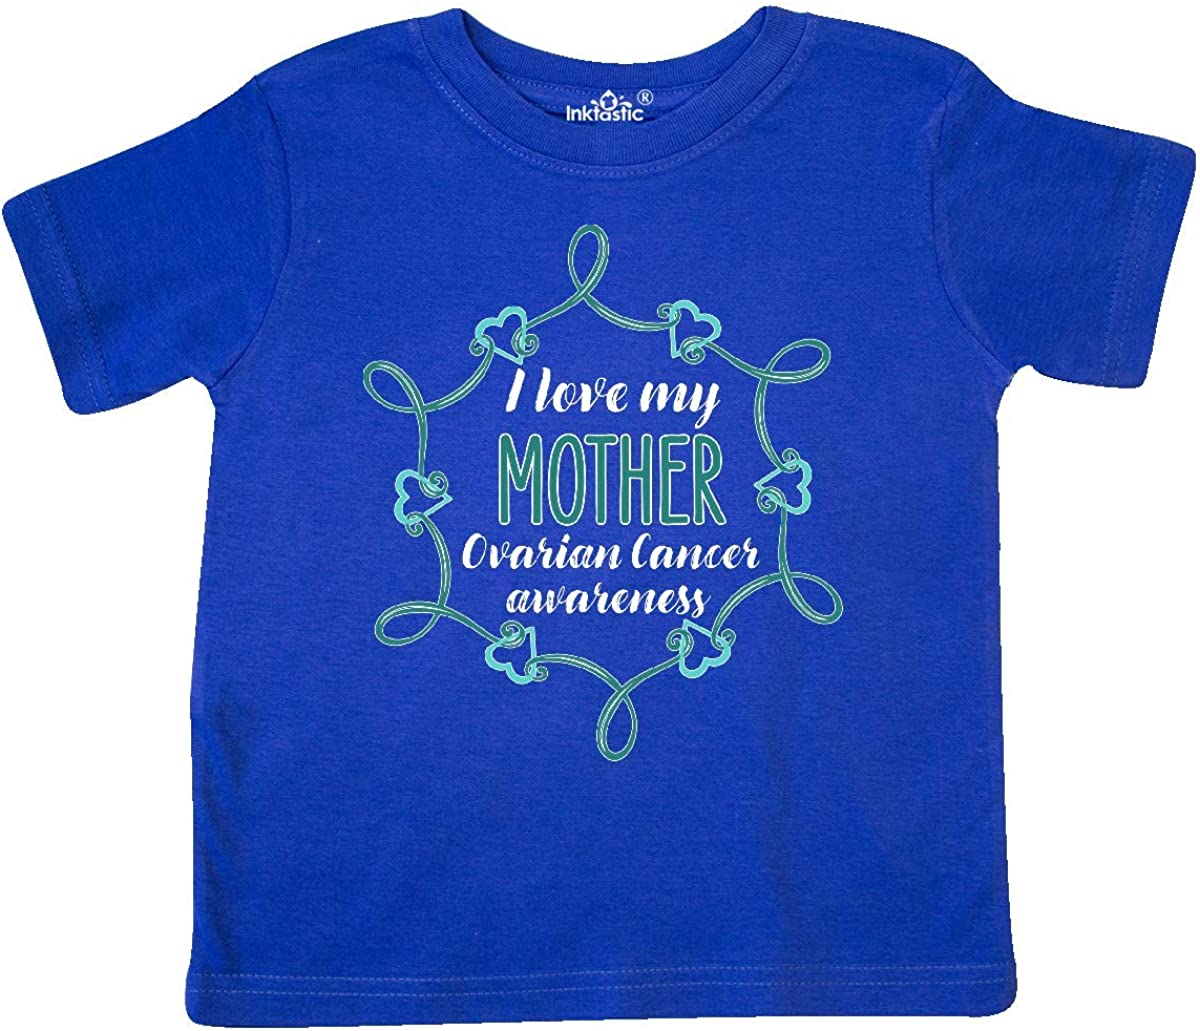 inktastic I Love My Mother Ovarian Cancer Awareness Toddler T-Shirt